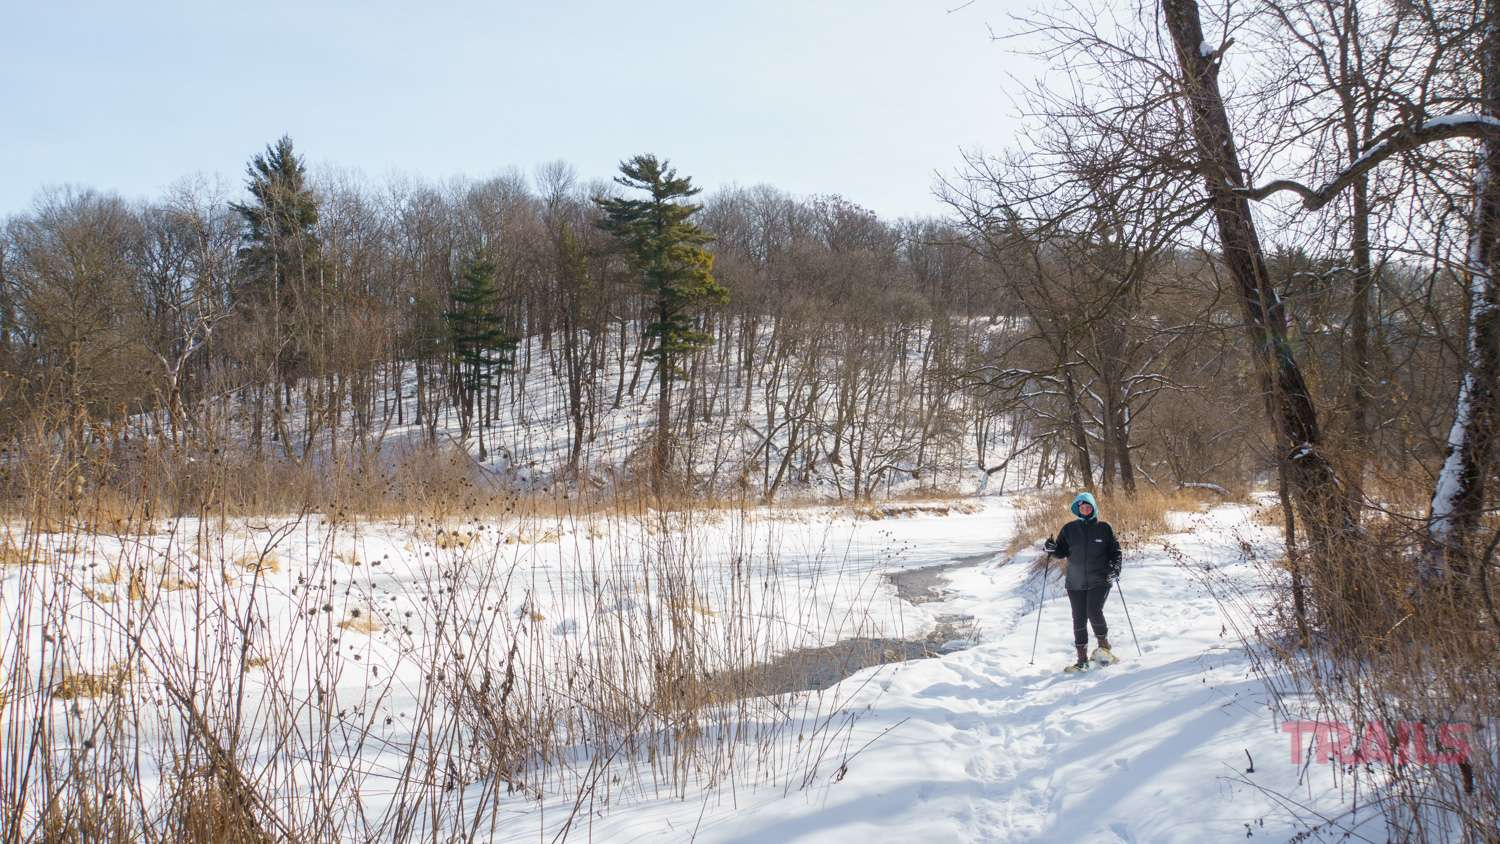 A woman on snowshoes walks along a mostly frozen river